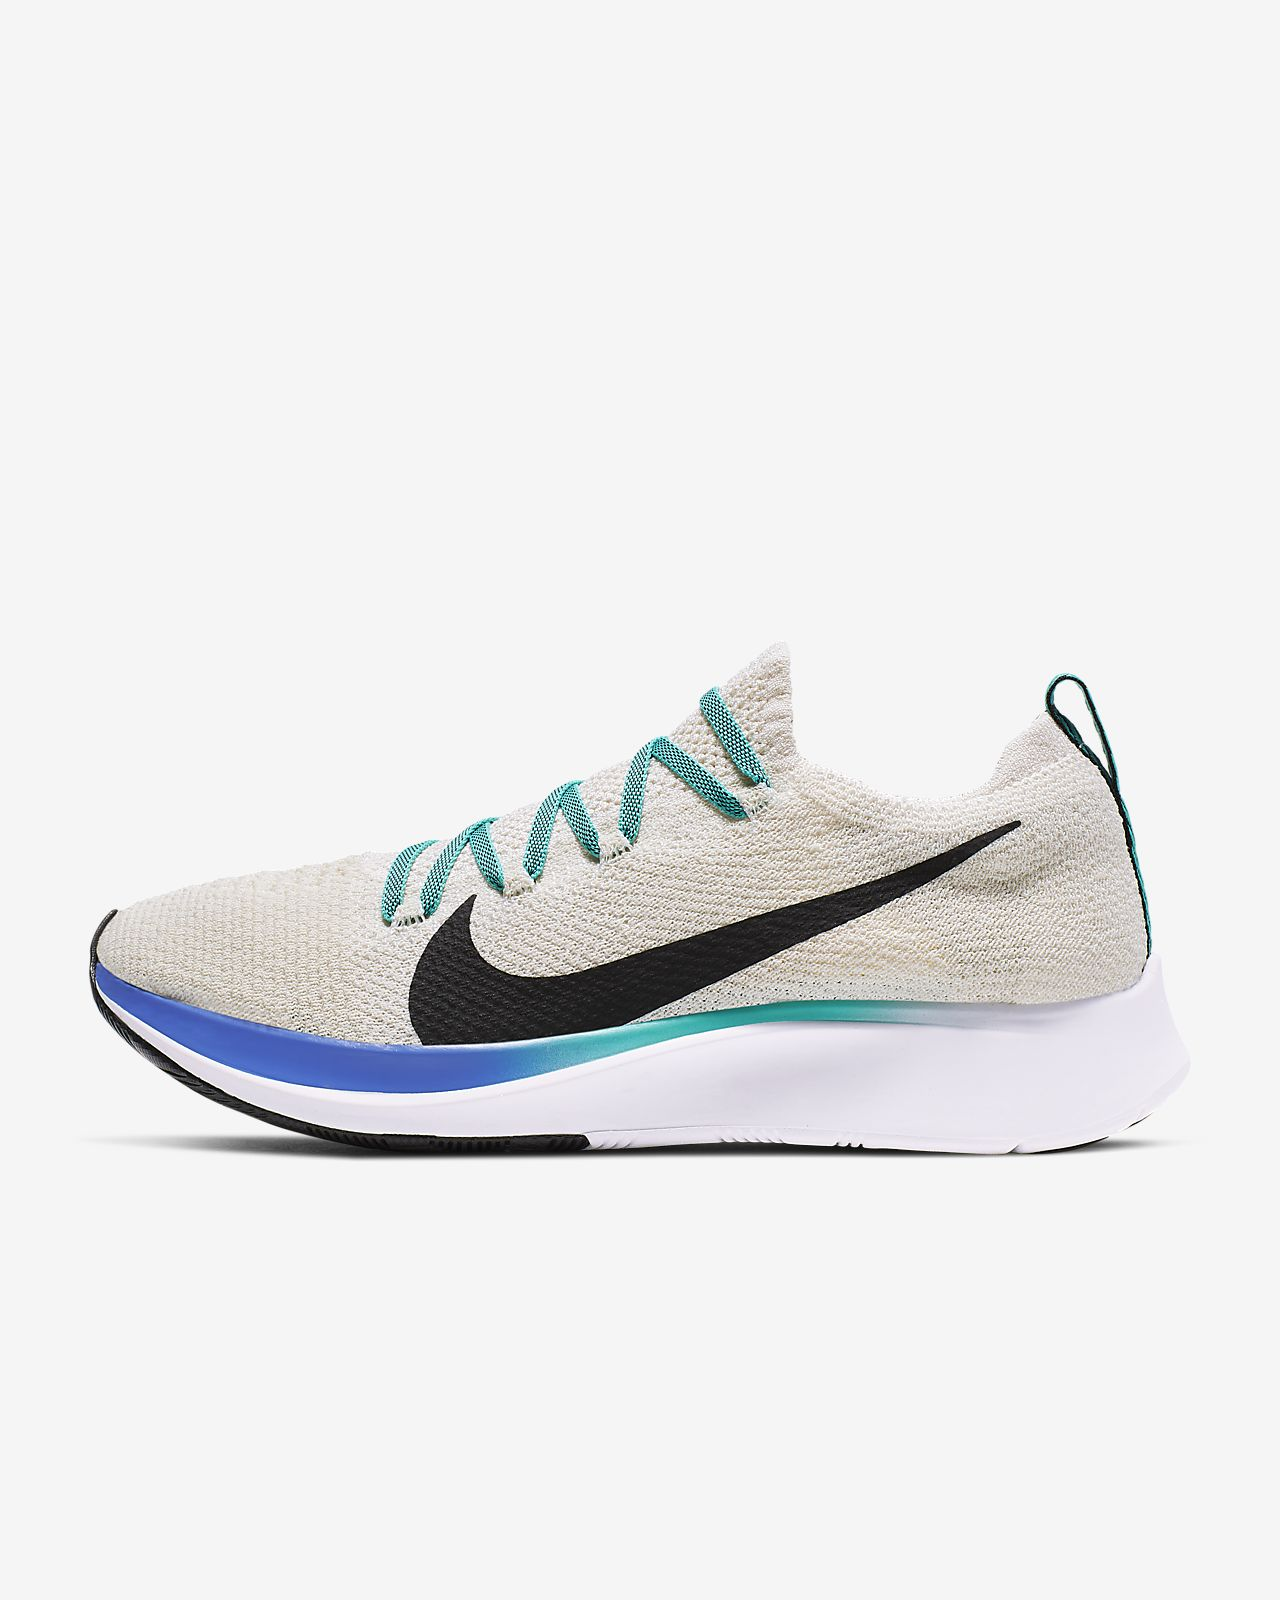 online retailer 42f39 841f9 ... Chaussure de running Nike Zoom Fly Flyknit pour Femme